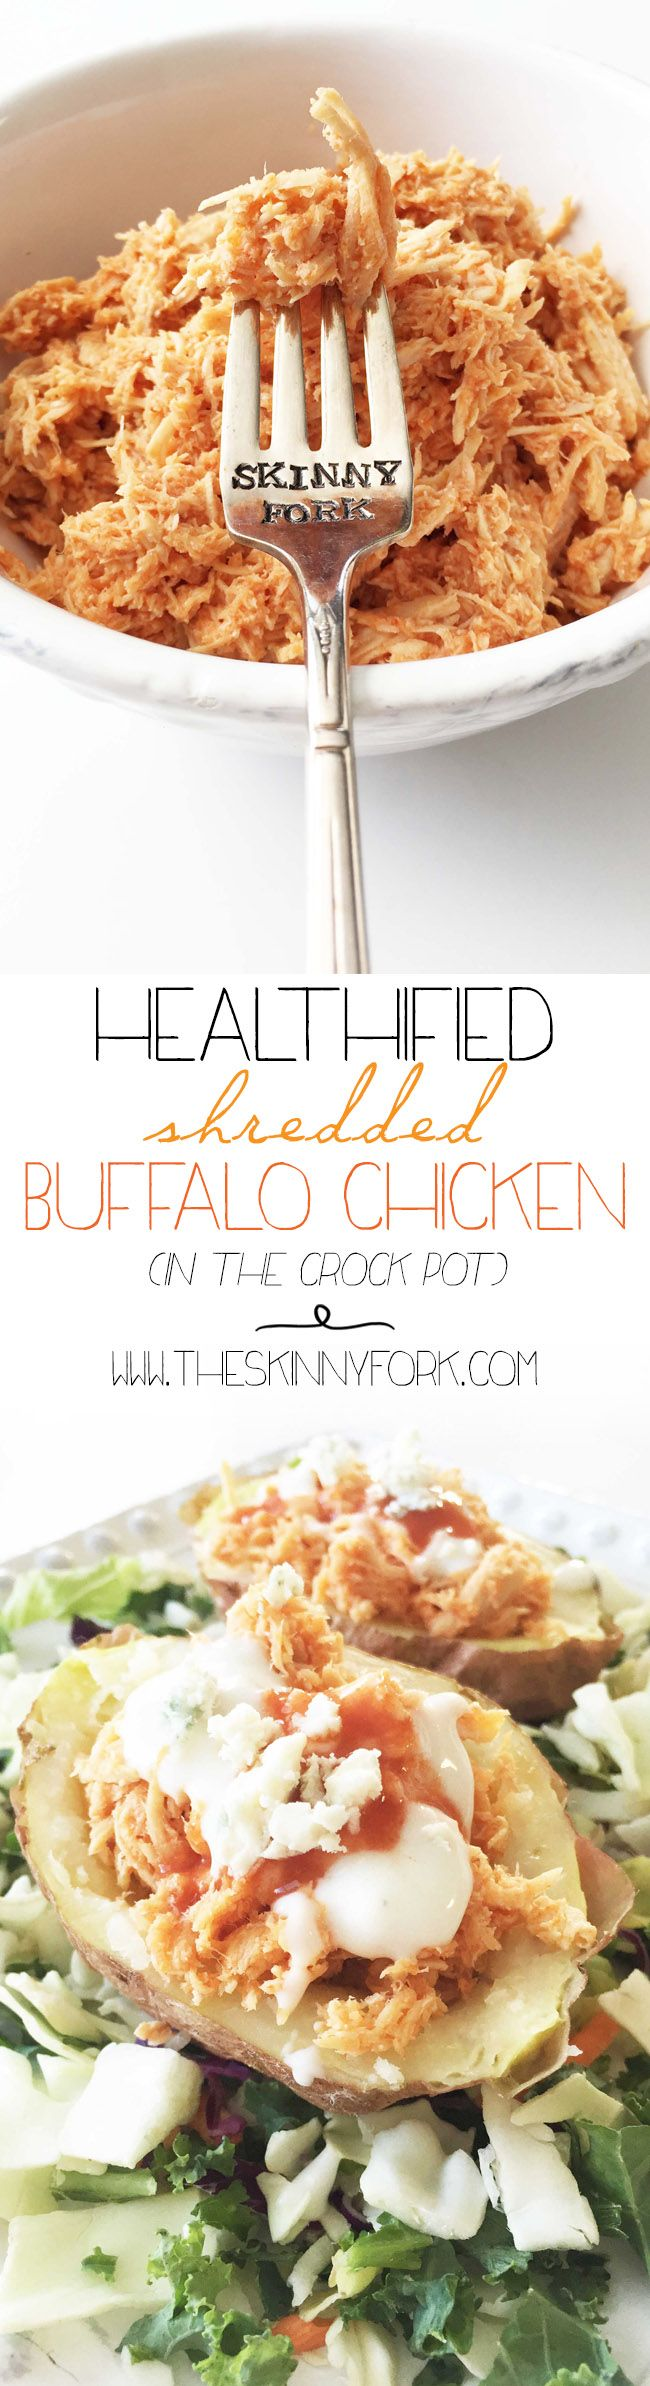 Healthified Shredded Buffalo Chicken (Crock Pot) - Spicy buffalo style pulled chicken to make and use in many ways!